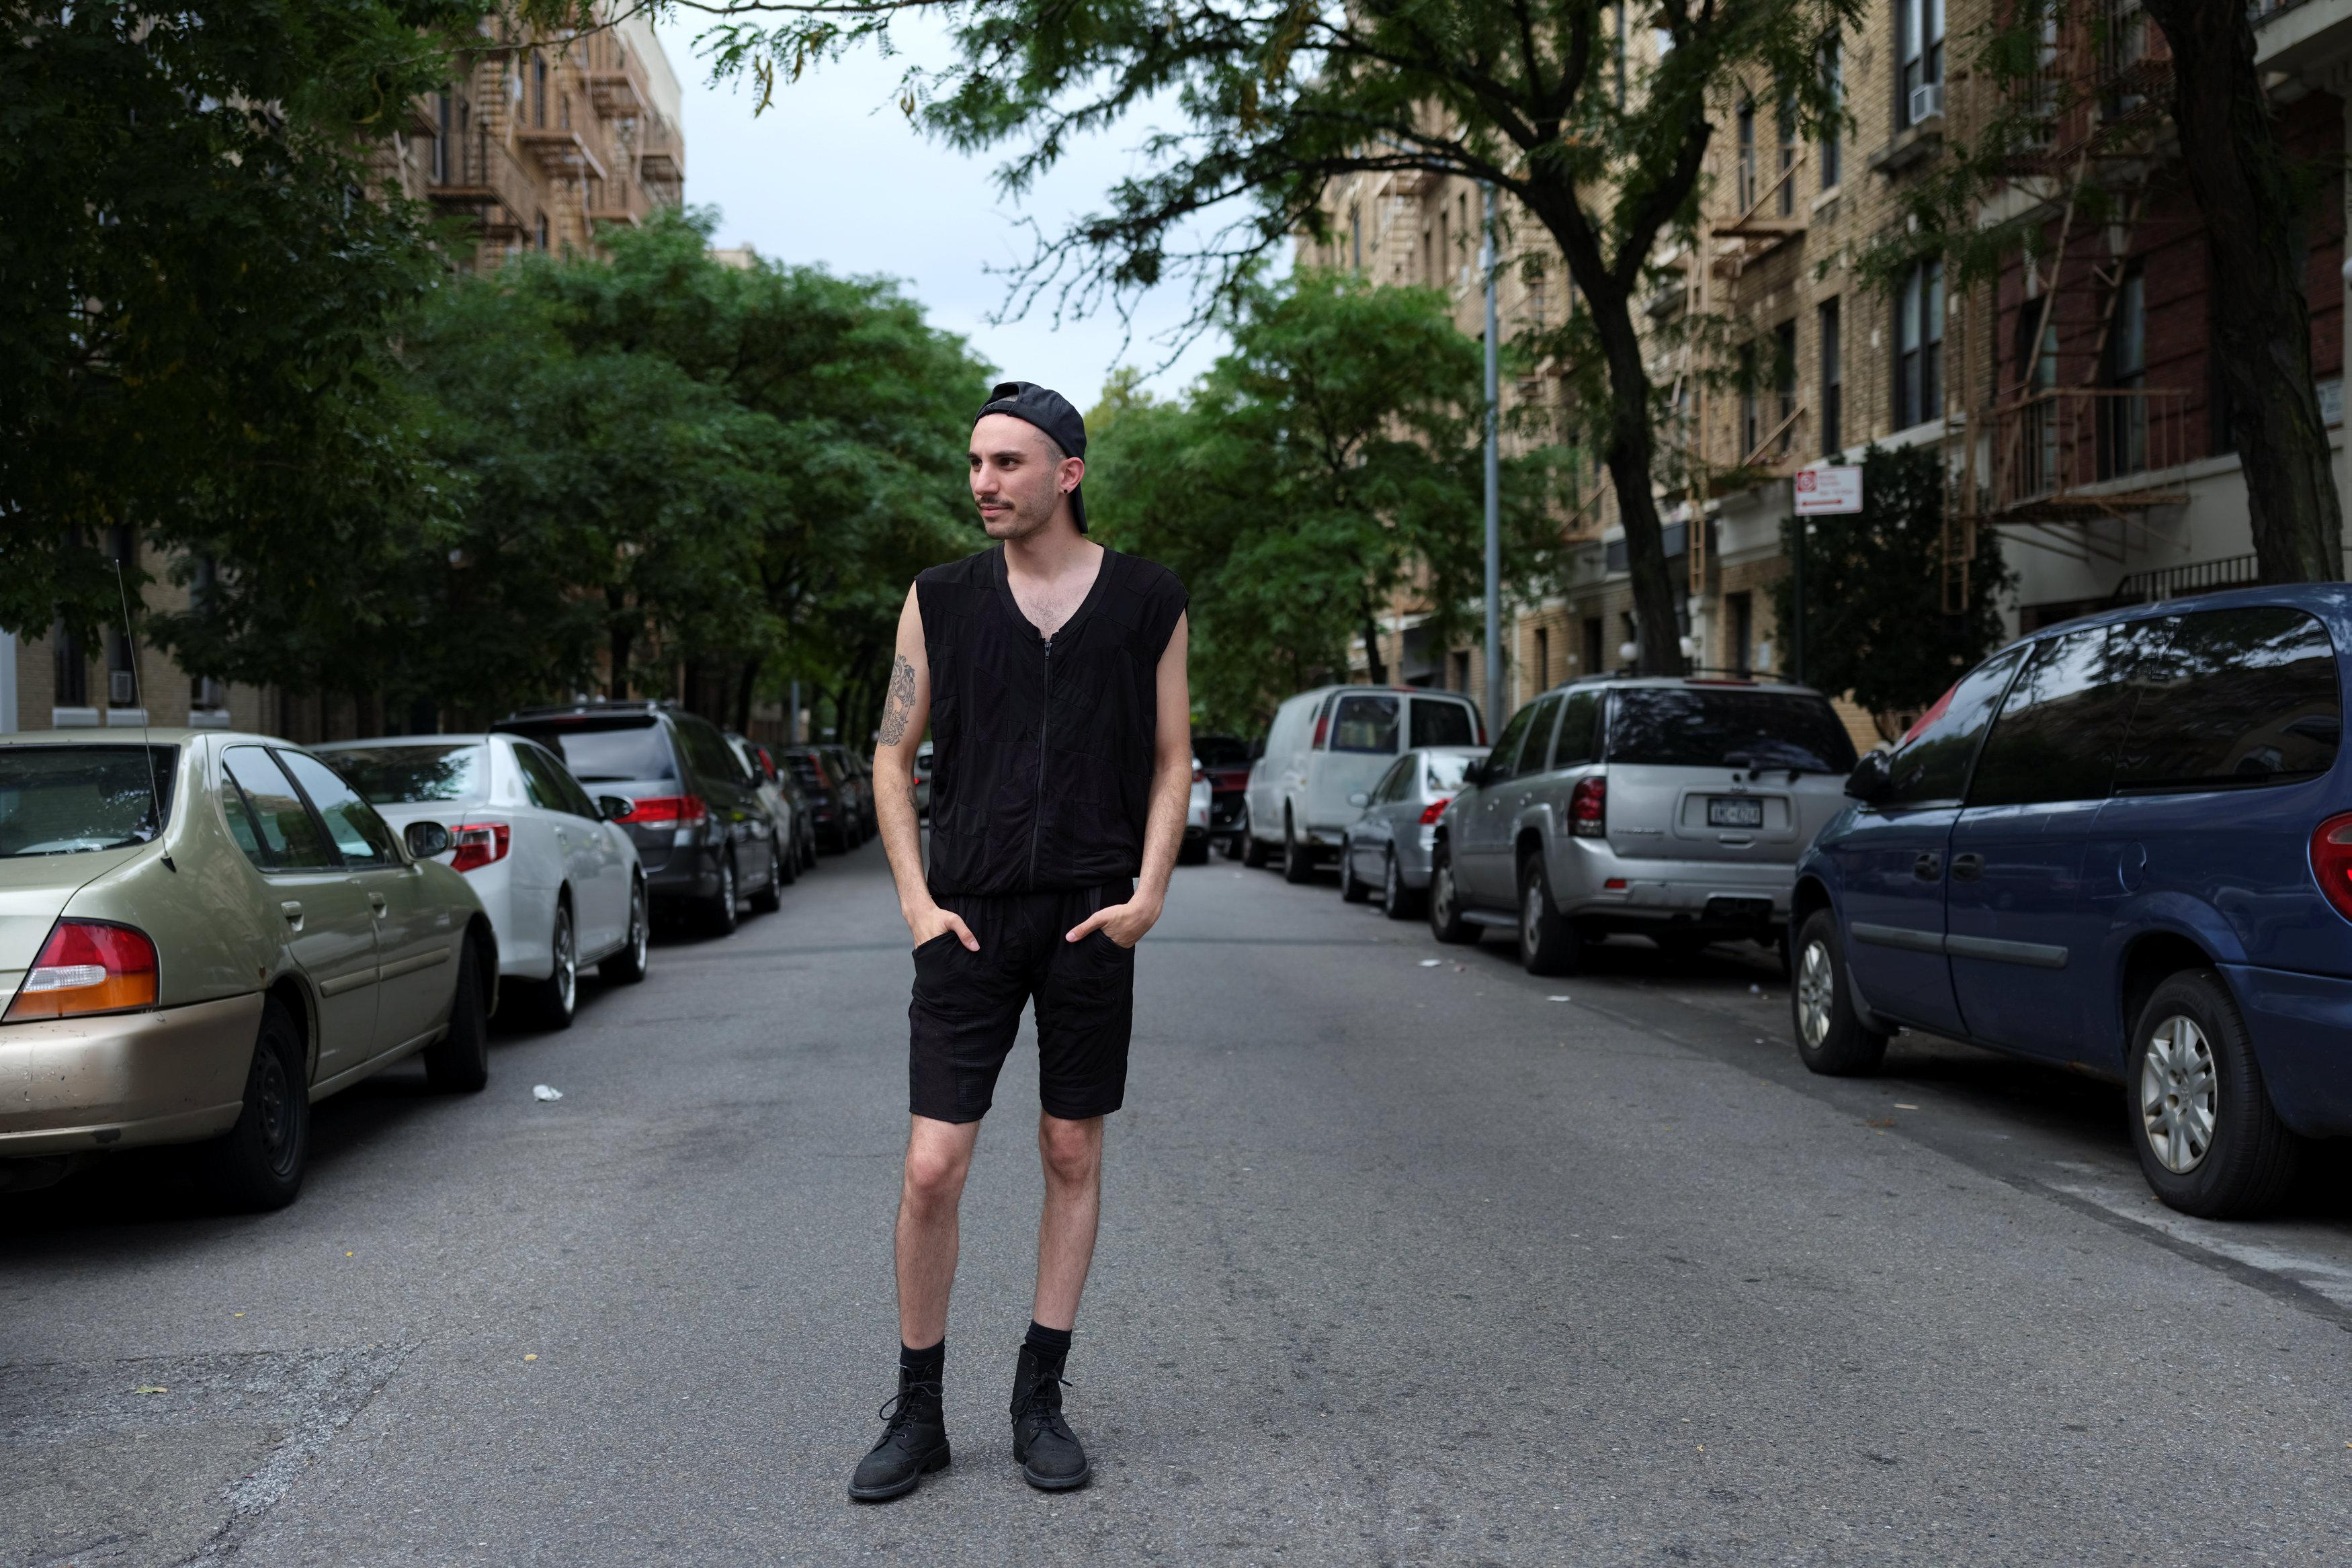 Daniel Silverstein, 29, designer and founder of Zero Waste Daniel, a unisex apparel store in Williamsburg, poses for a picture in the Brooklyn borough of New York, U.S., September 2, 2018.  Caitlin Ochs